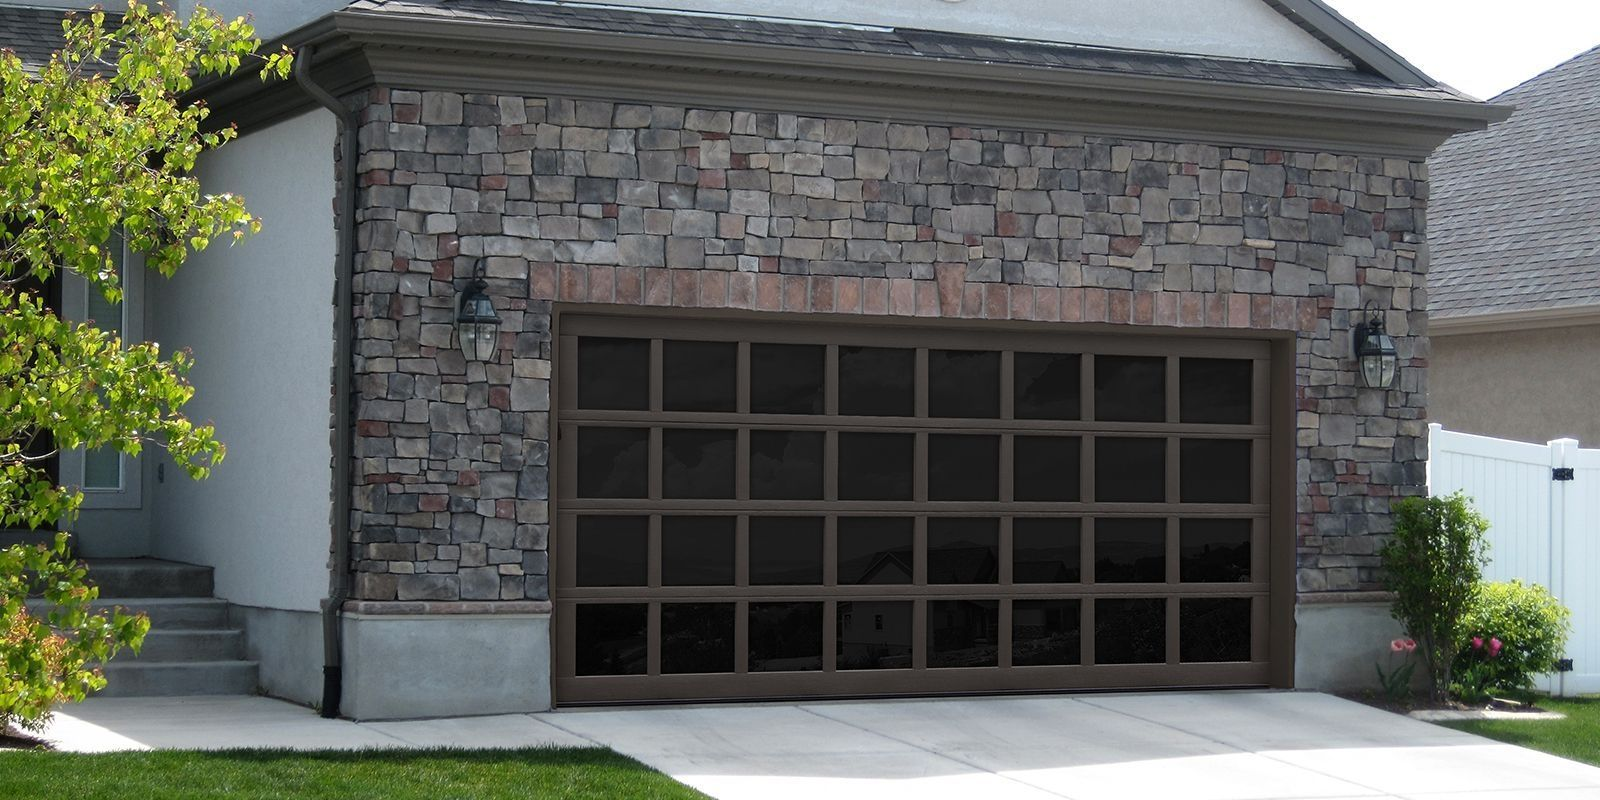 12 Foot Wide Glass Garage Door House Ideas In 2019 Garage Doors Garage Door Types Diy Garage Door